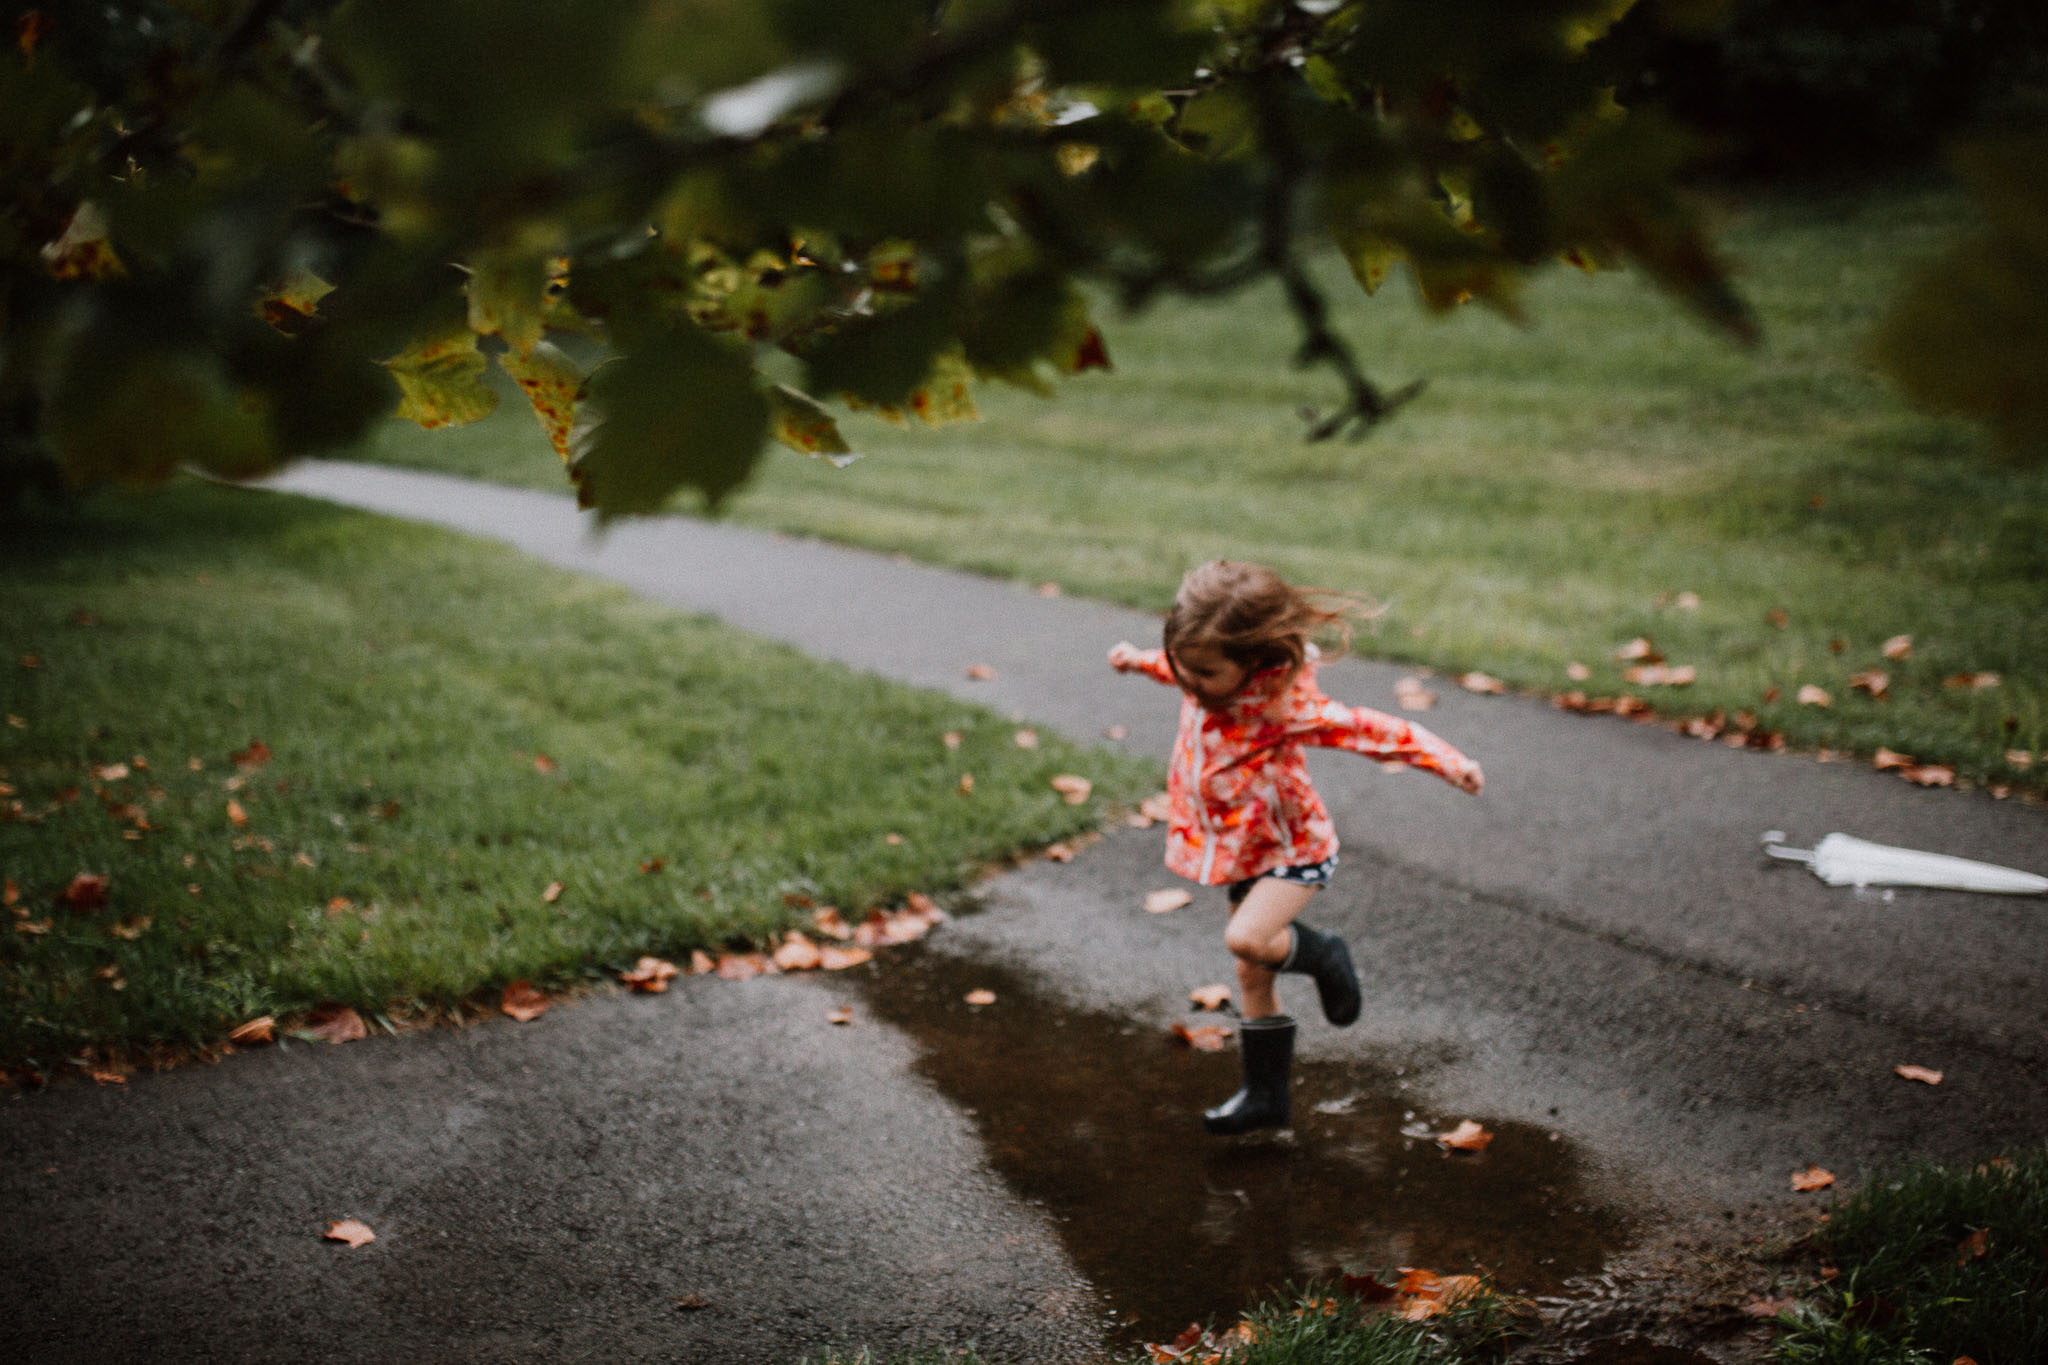 Puddle Jumping Rainboots Toddler Girl Ashburn Virginia Lifestyle Documentary Family Marti Austin Photography